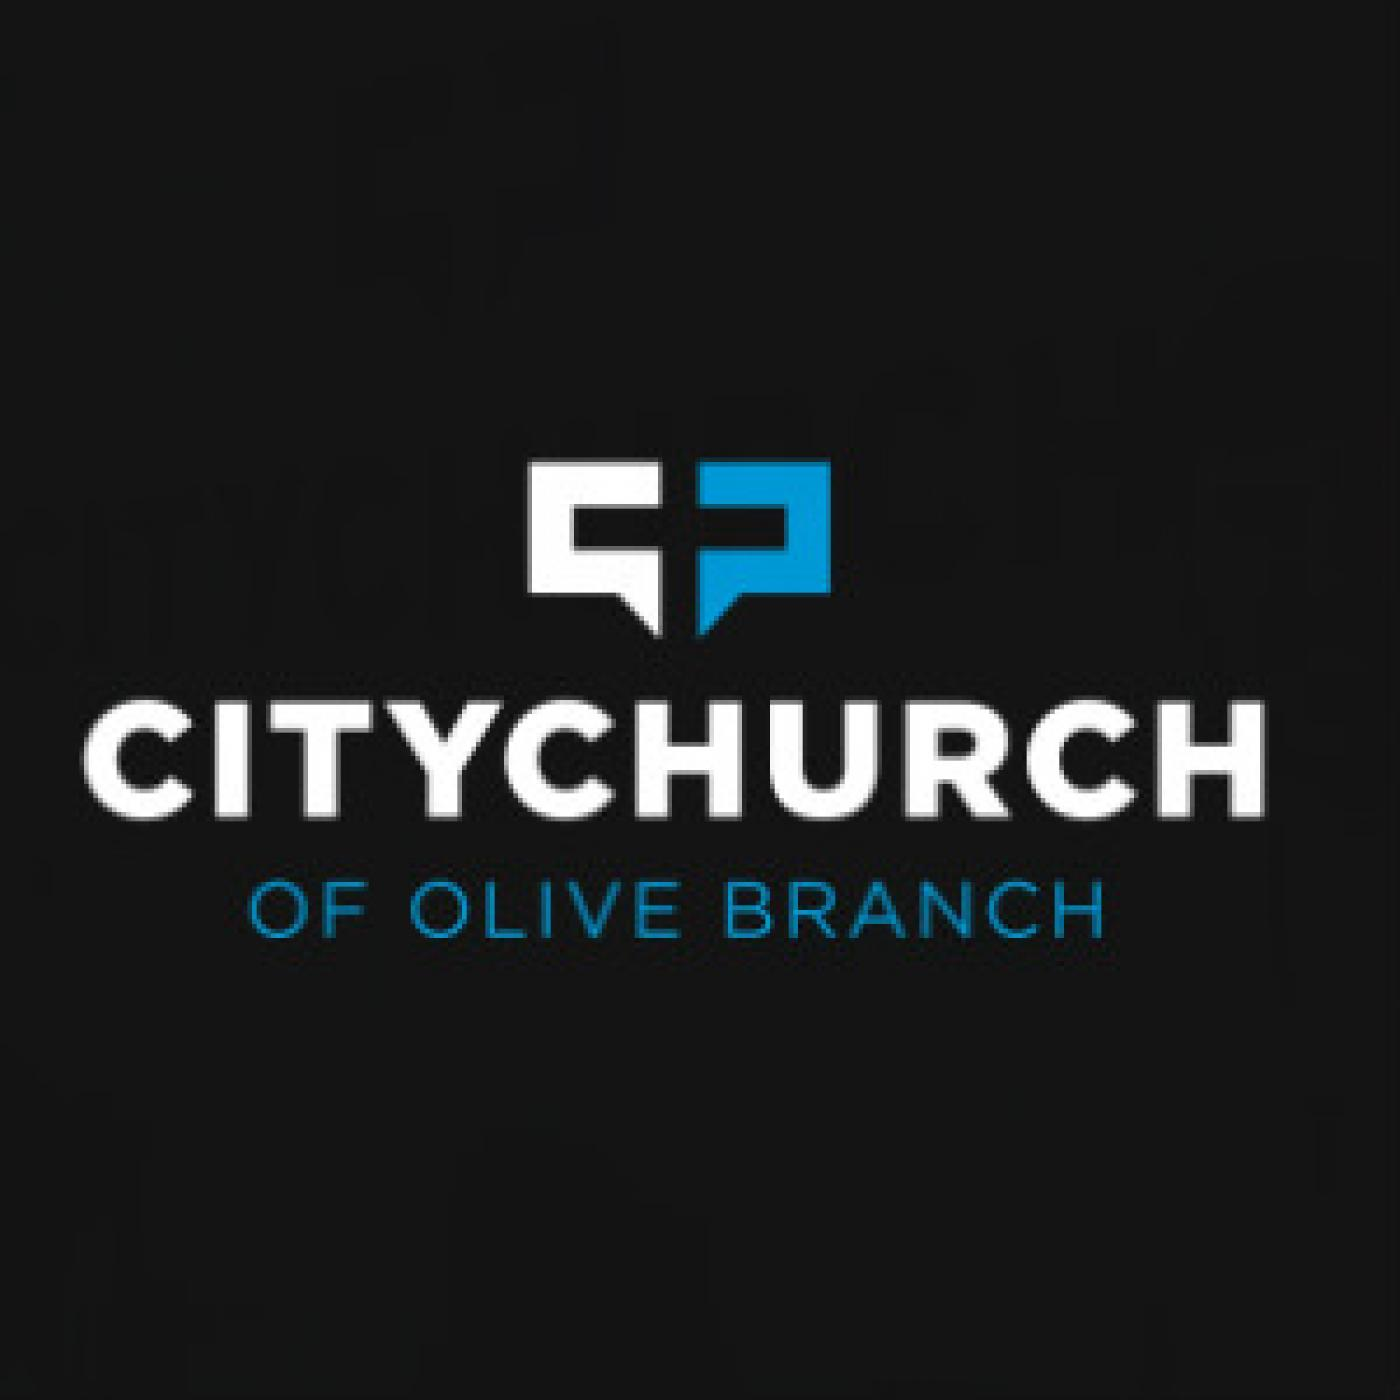 CityChurch of Olive Branch